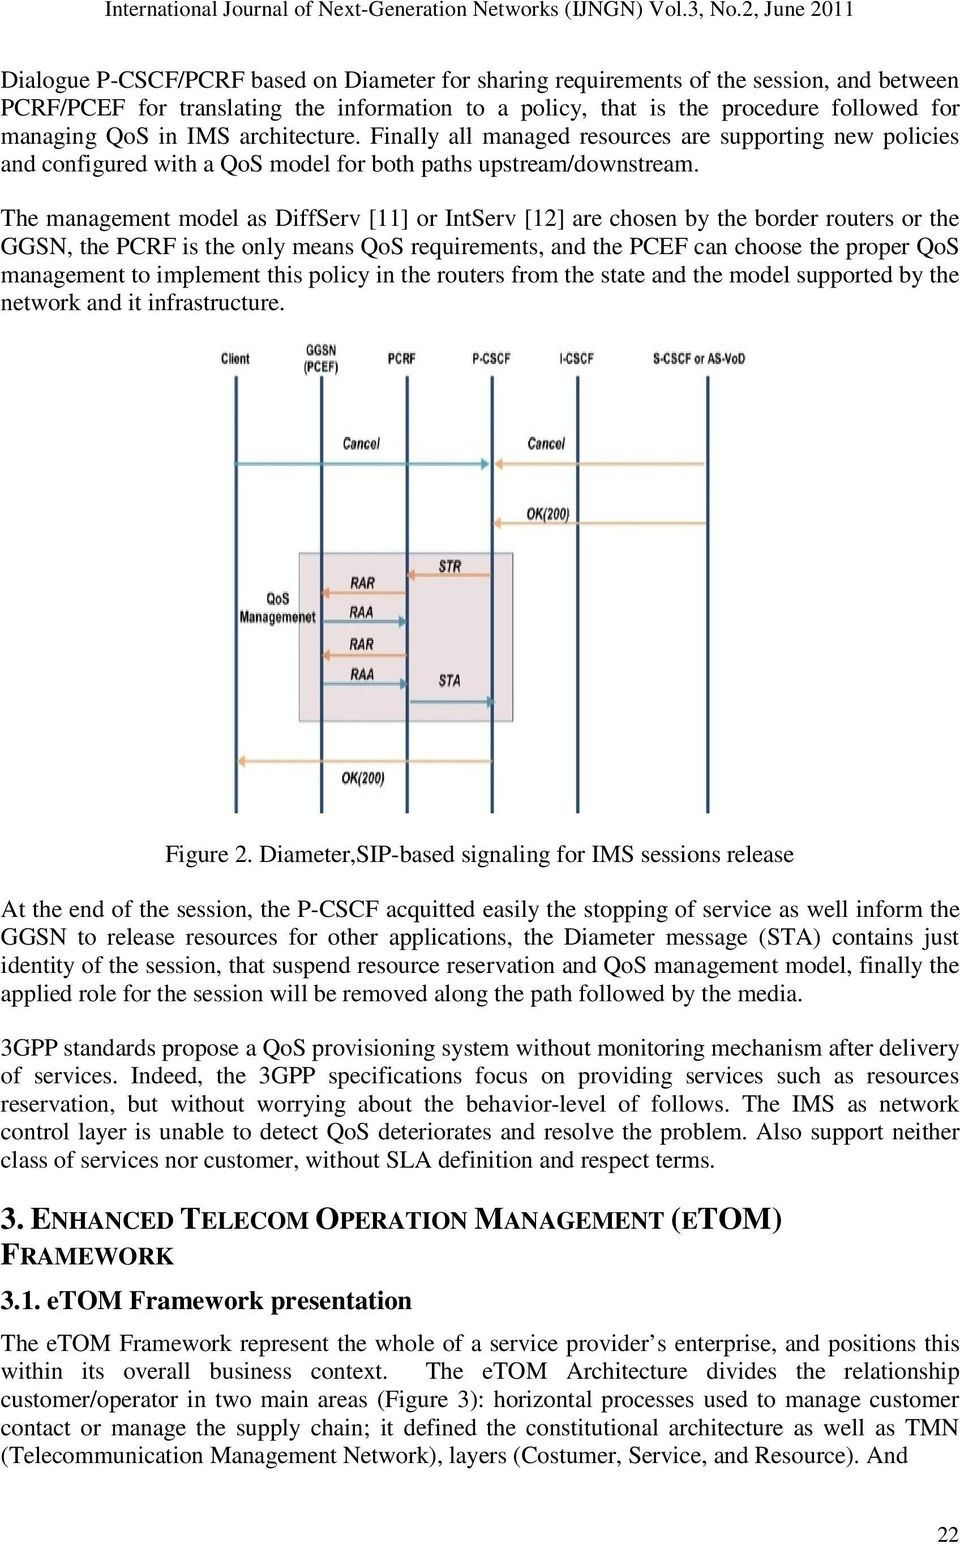 The management model as DiffServ [11] or IntServ [12] are chosen by the border routers or the GGSN, the PCRF is the only means QoS requirements, and the PCEF can choose the proper QoS management to